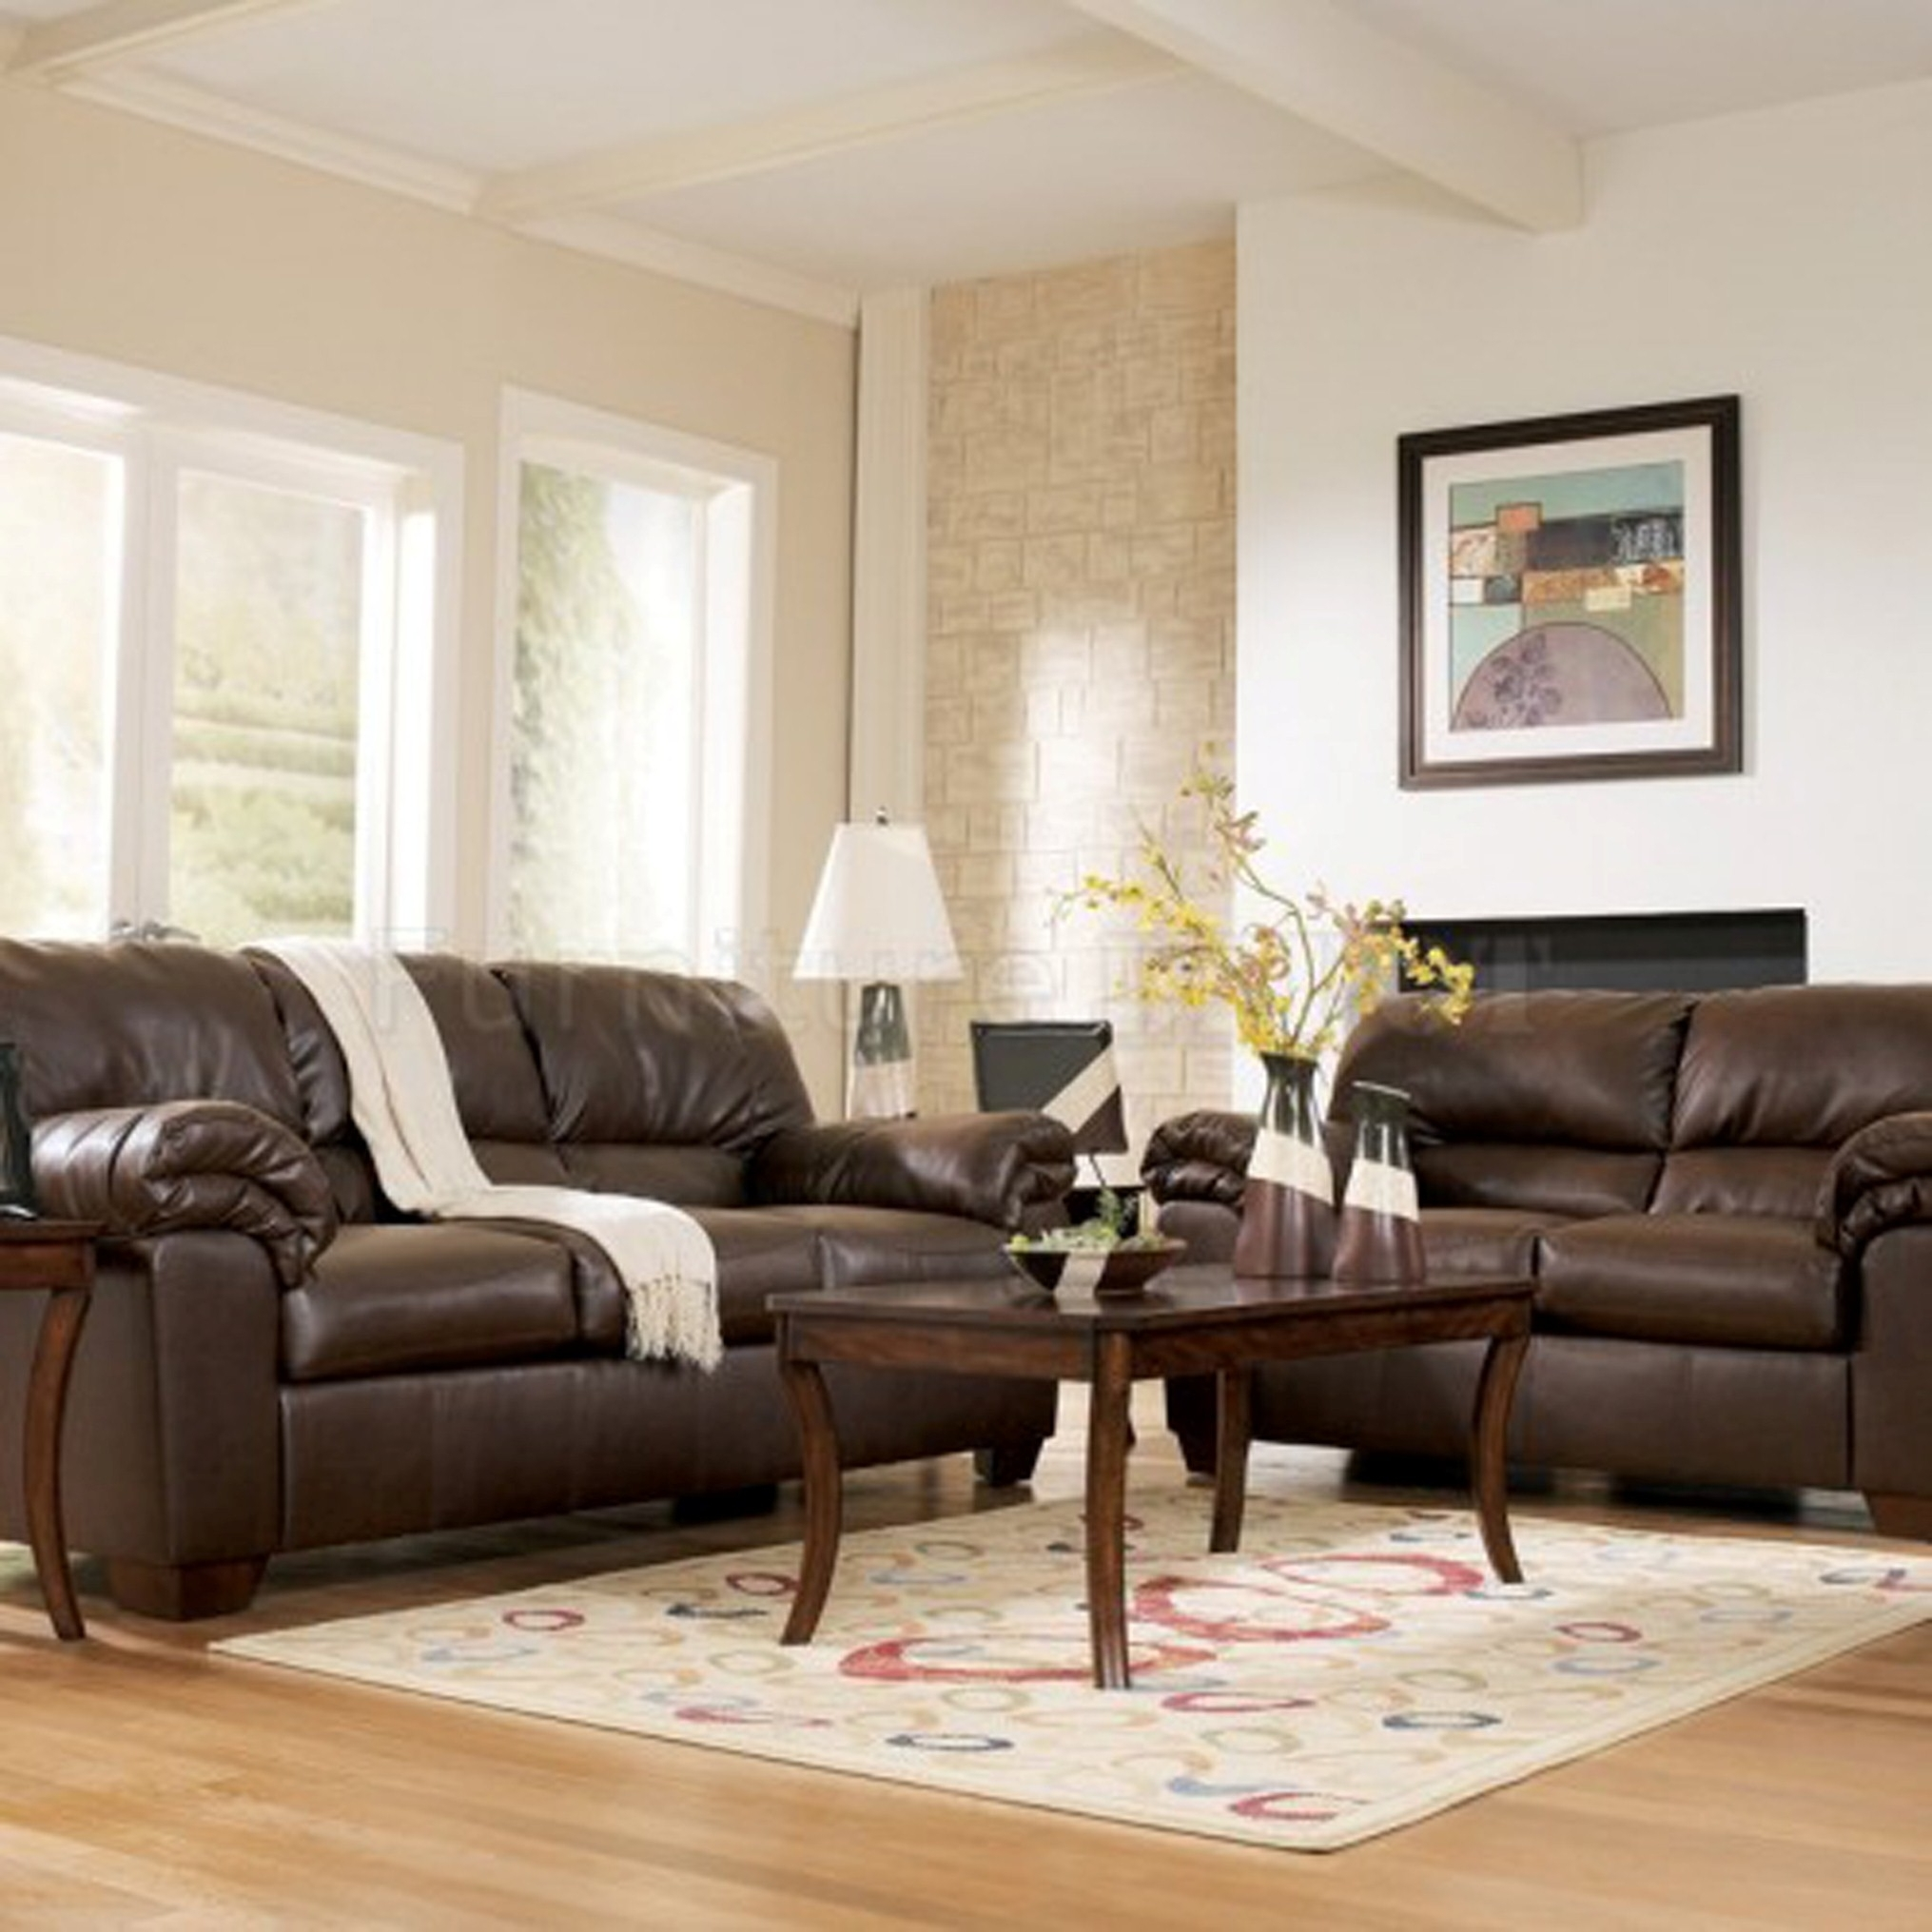 brown leather sofa living room ideas living room ideas brown leather sofa 25166